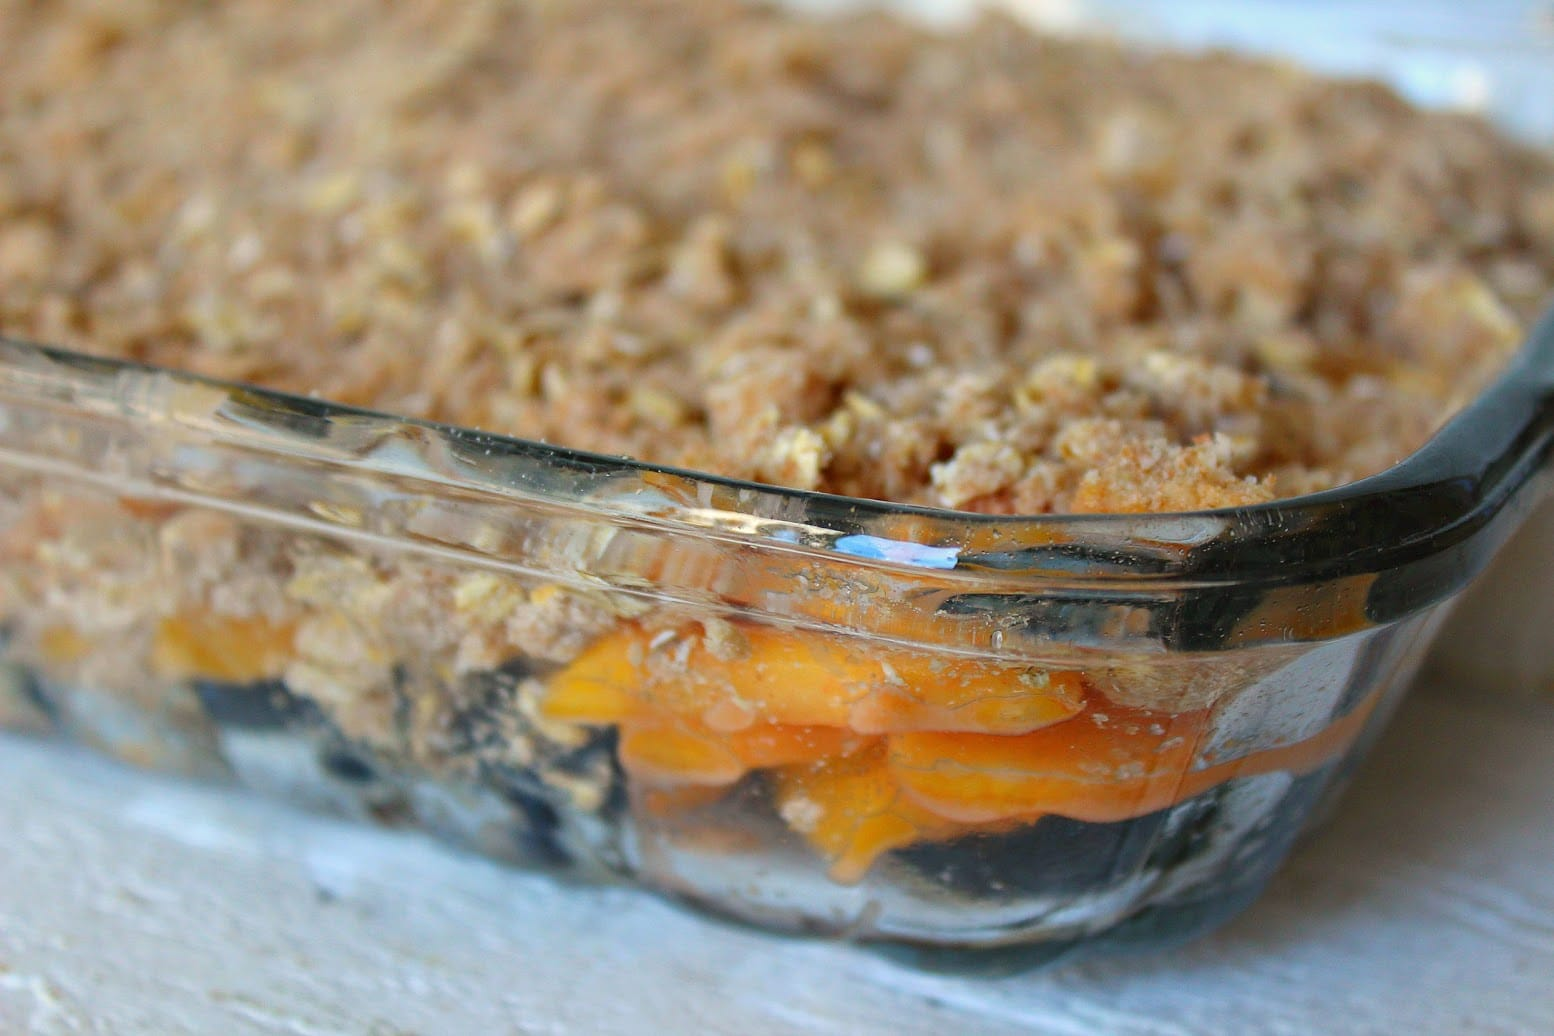 Pour the peaches and blueberries into a shallow glass baking dish and cover with the crumble topping.